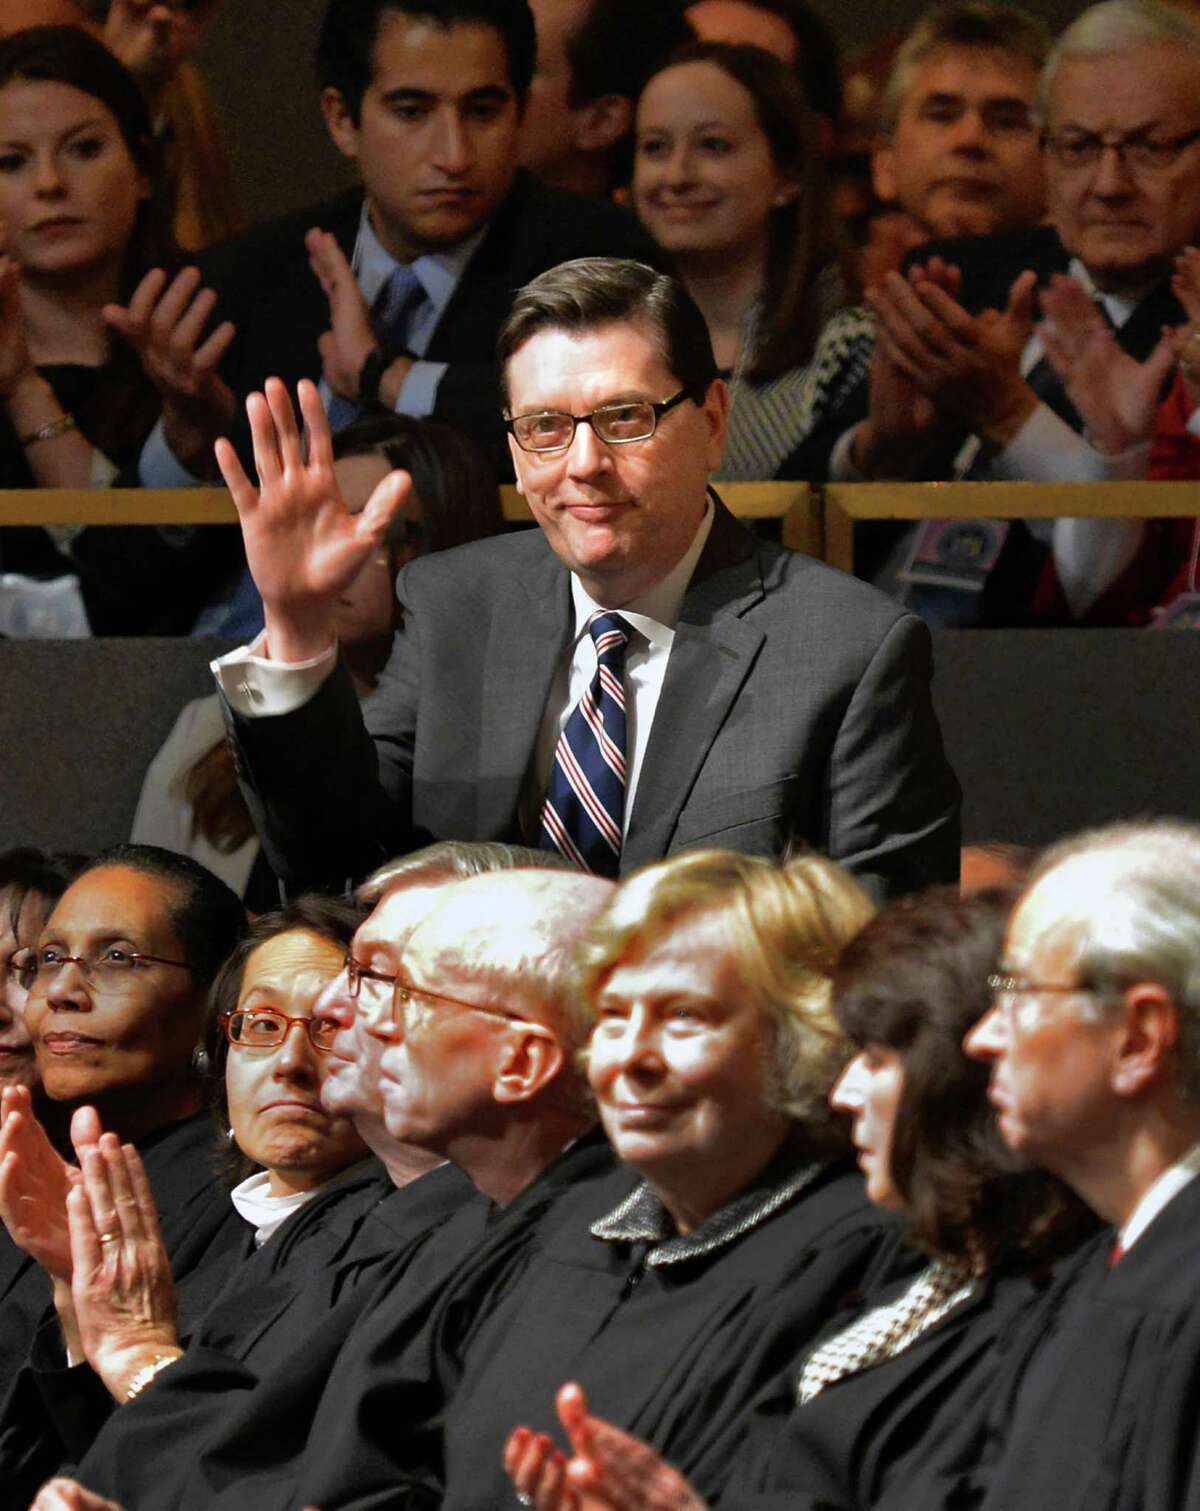 Mark Gearan is introduced during Gov. Andrew Cuomo's 2014 State of the State Address Wednesday, Jan. 8, 2014, at the Empire State Plaza Convention Center in Albany, N.Y. (John Carl D'Annibale / Times Union)